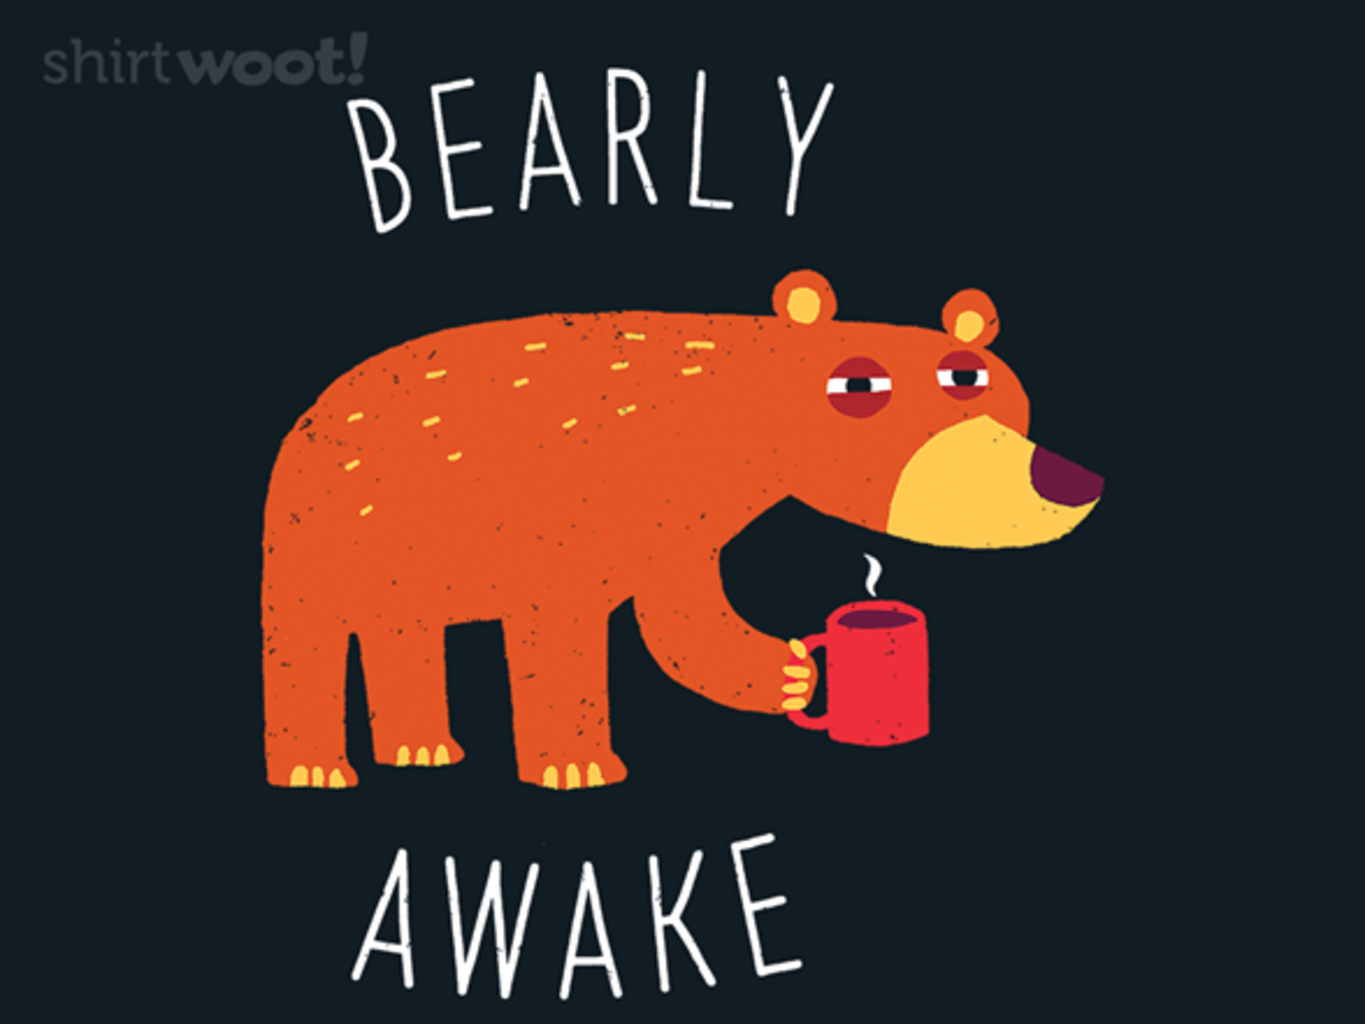 Woot!: Bearly Awake